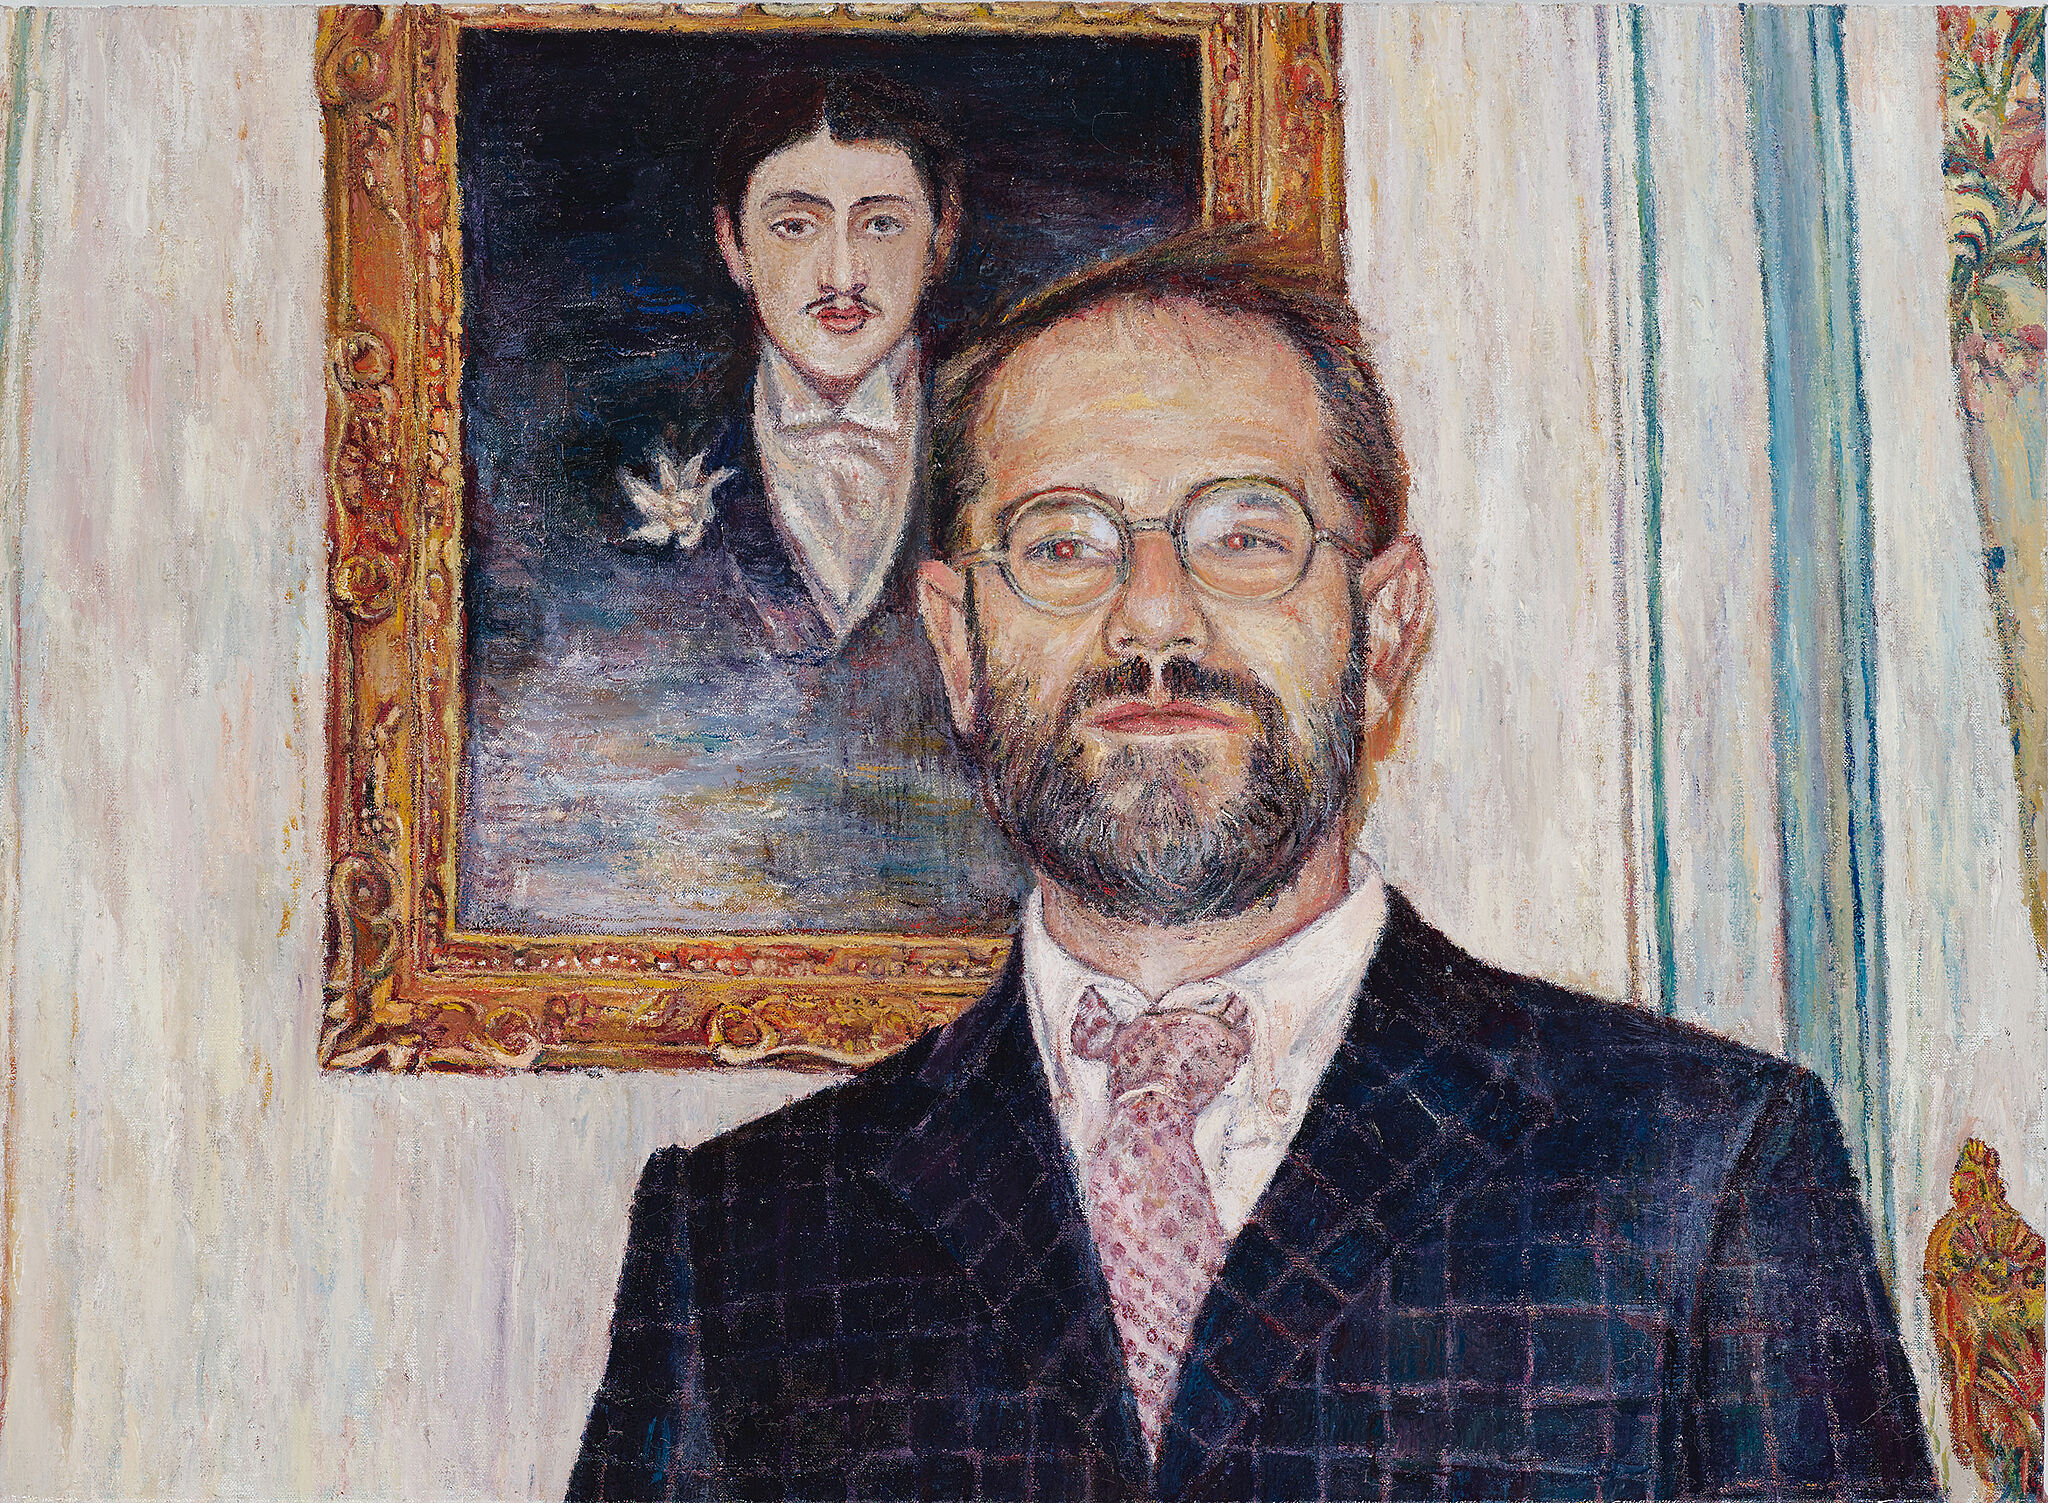 A painting of a man standing in front of a painting.